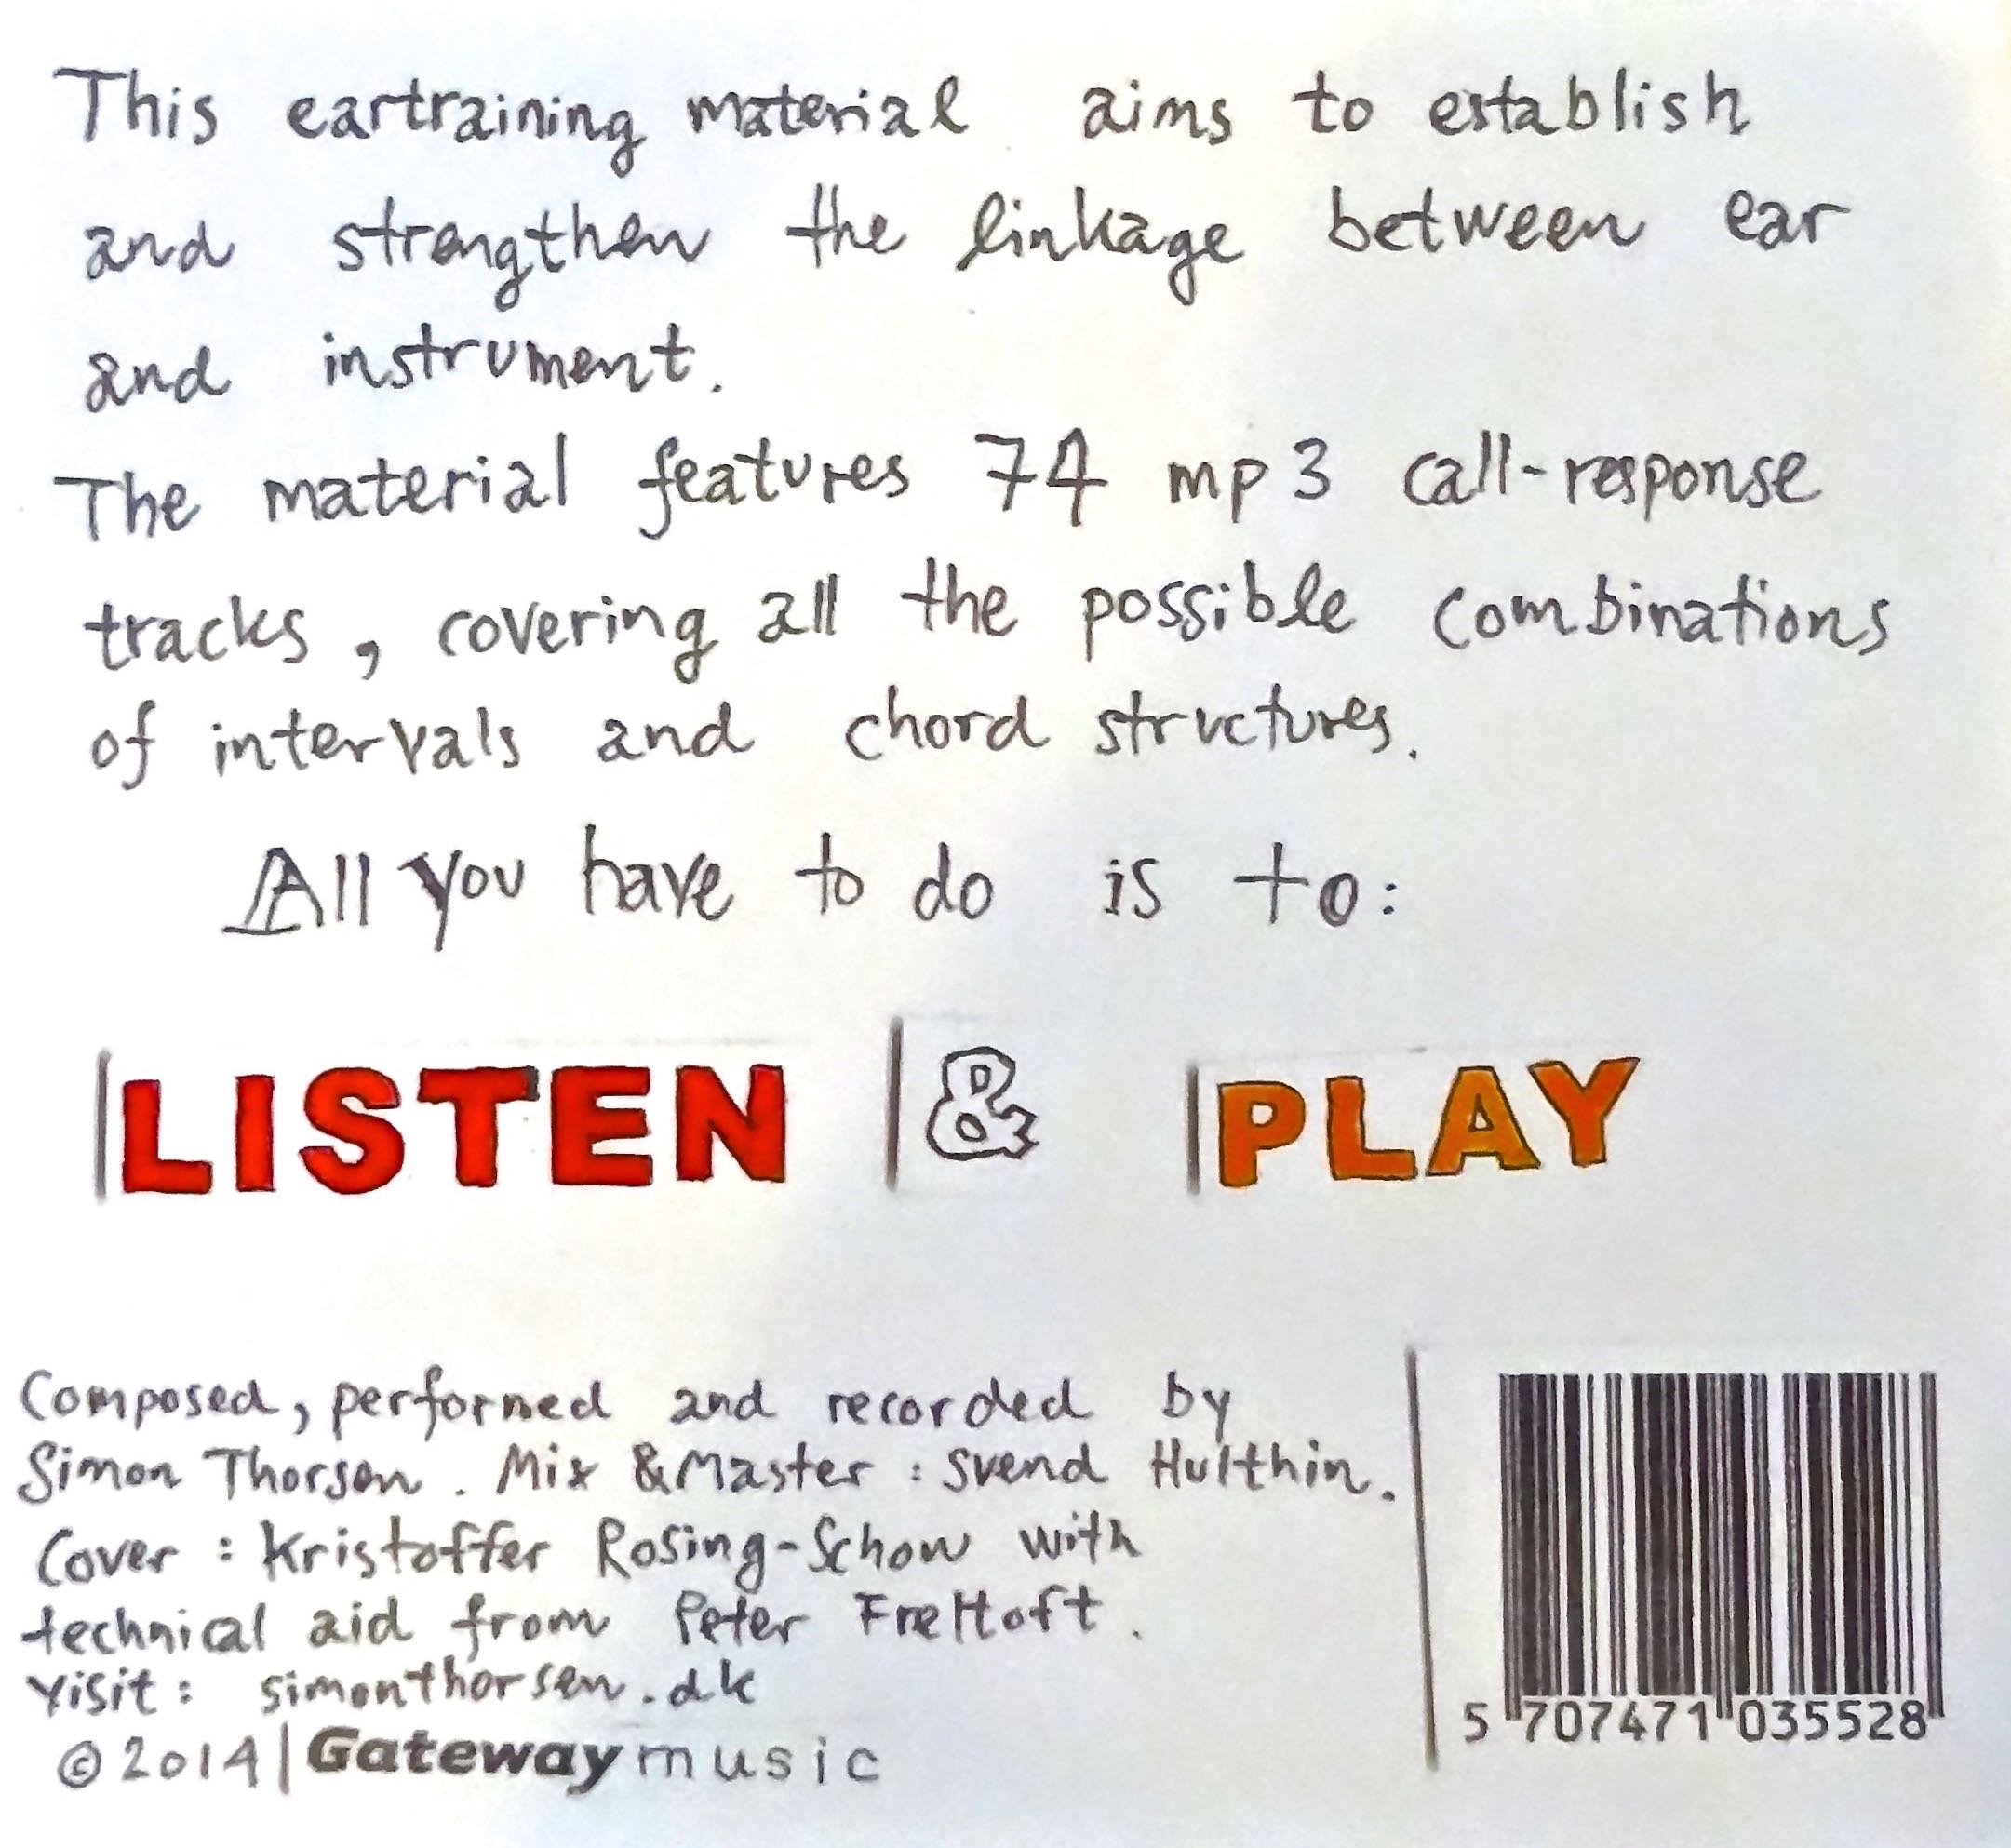 how to play what are you listening to